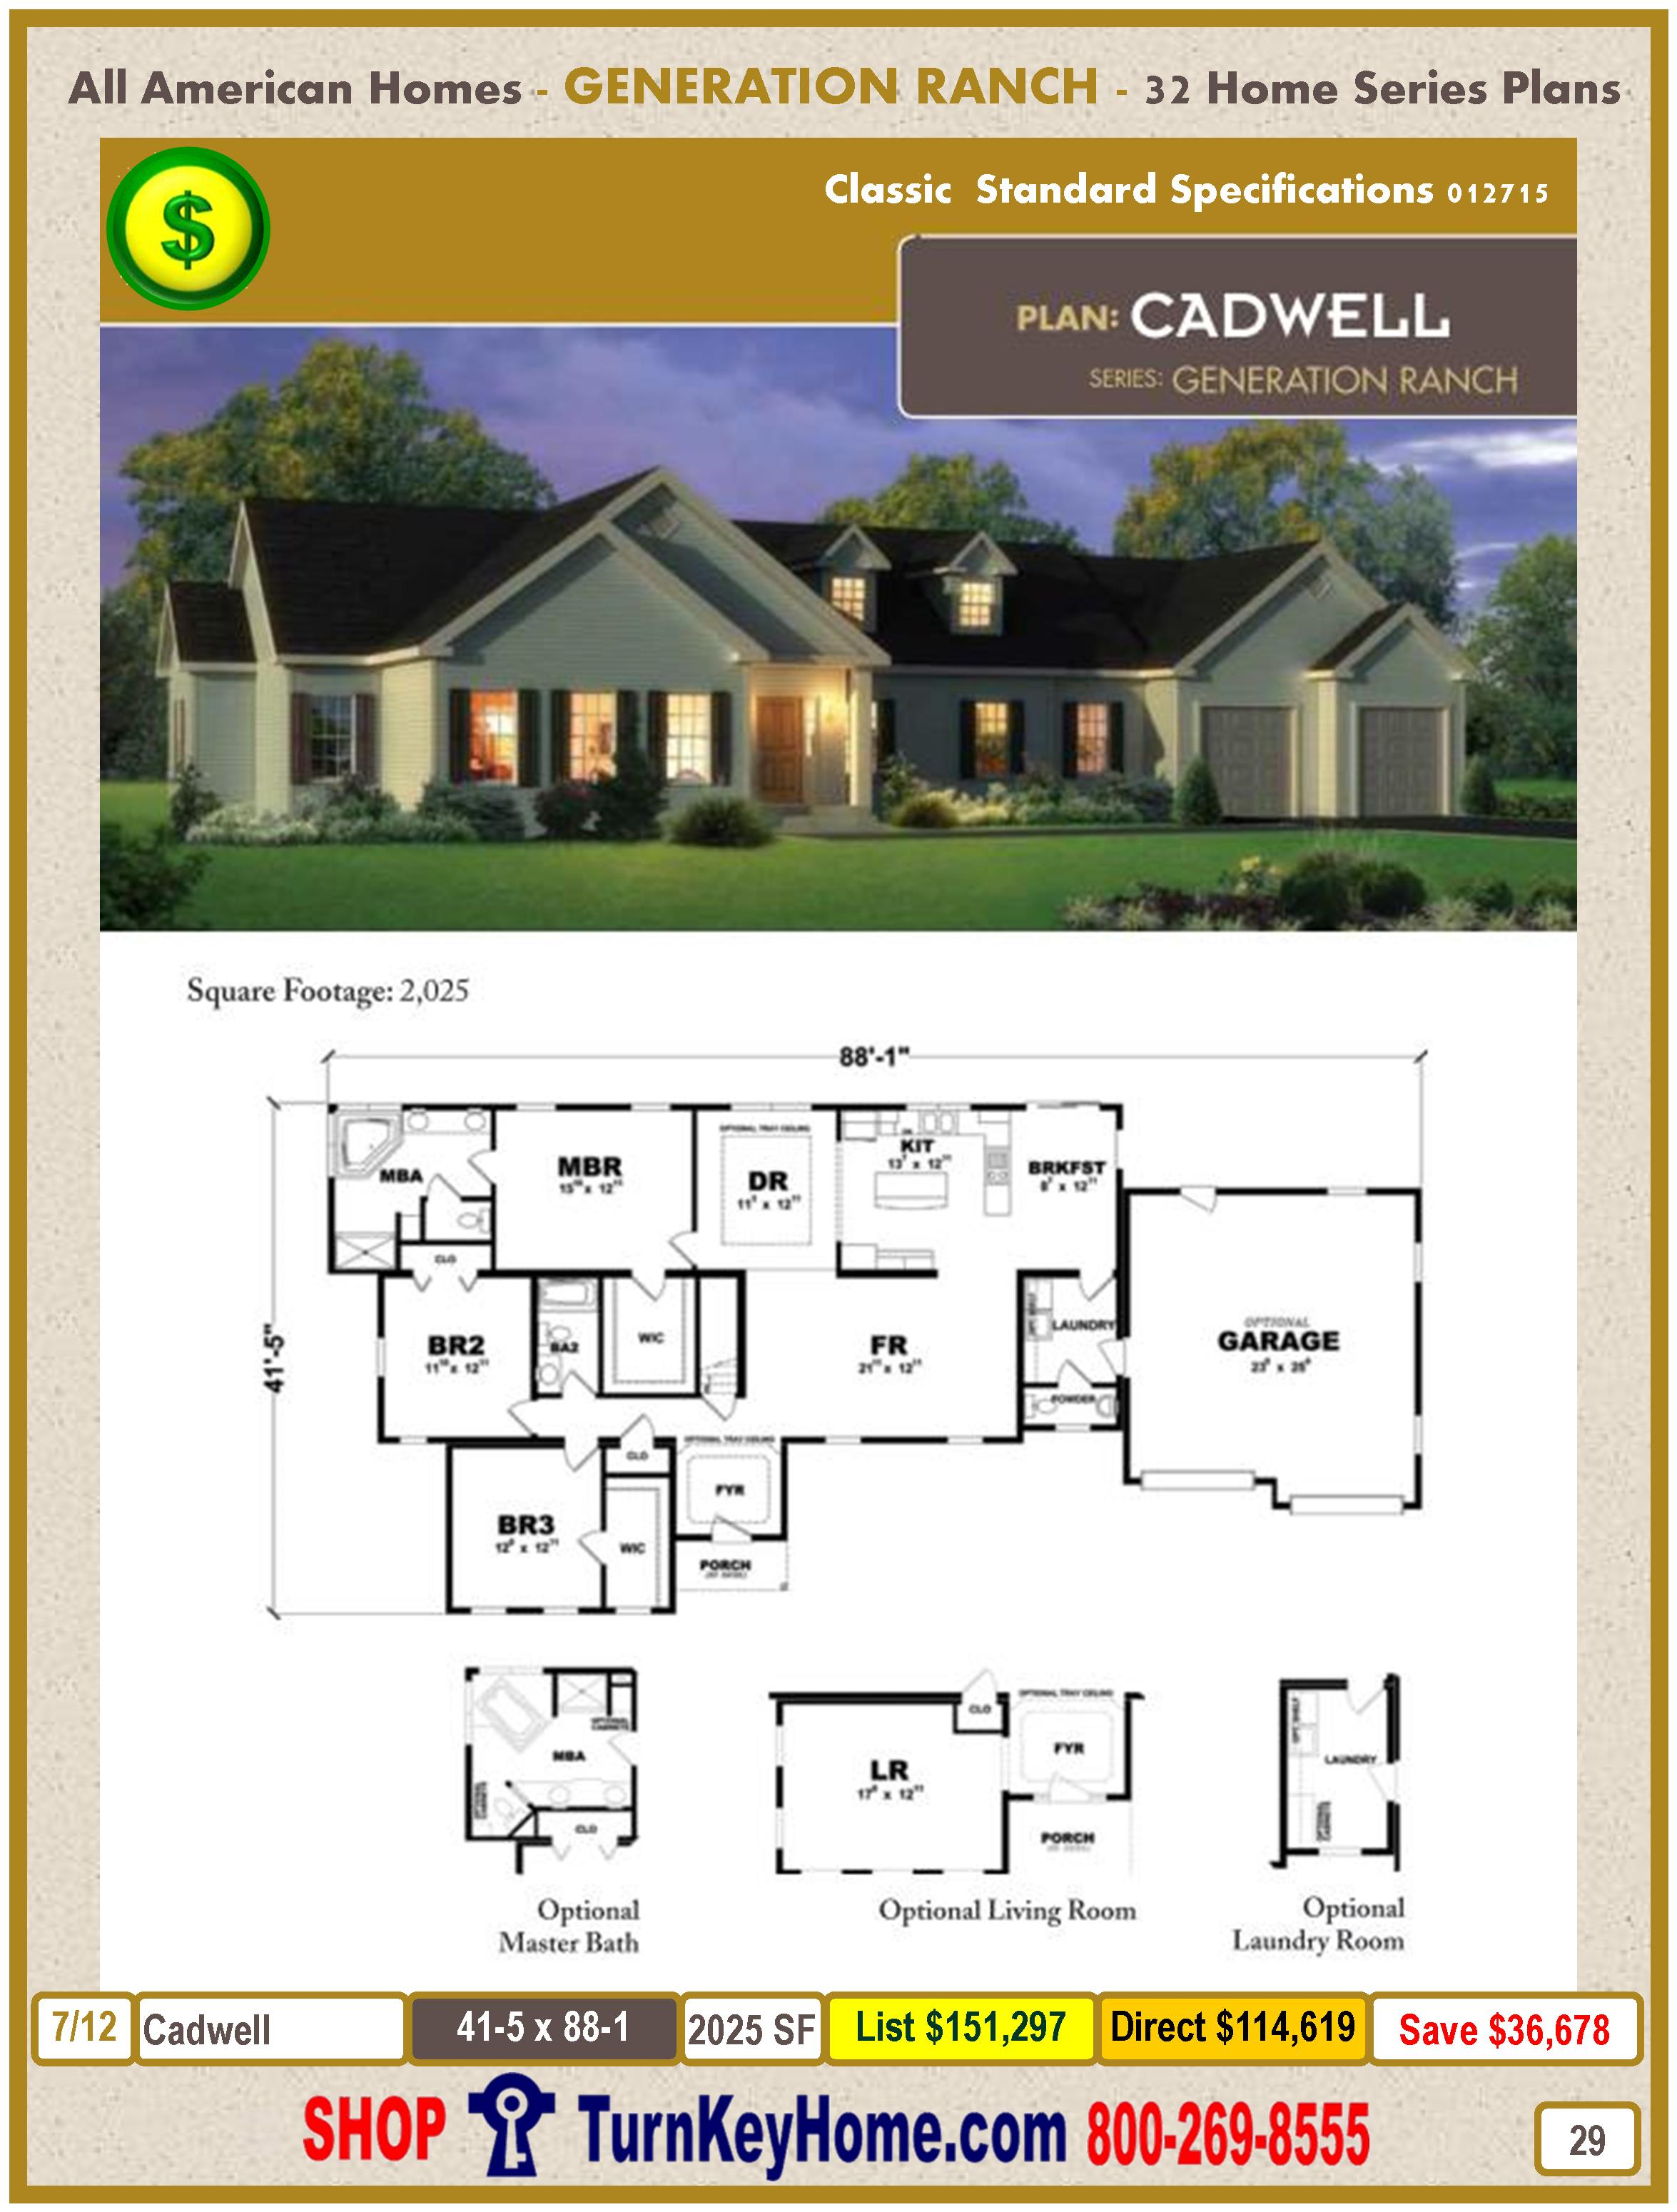 Modular.All.American.Homes.Generation.Ranch.Home.Series.Catalog.Page.29.Cadwell.Direct.Price.021415